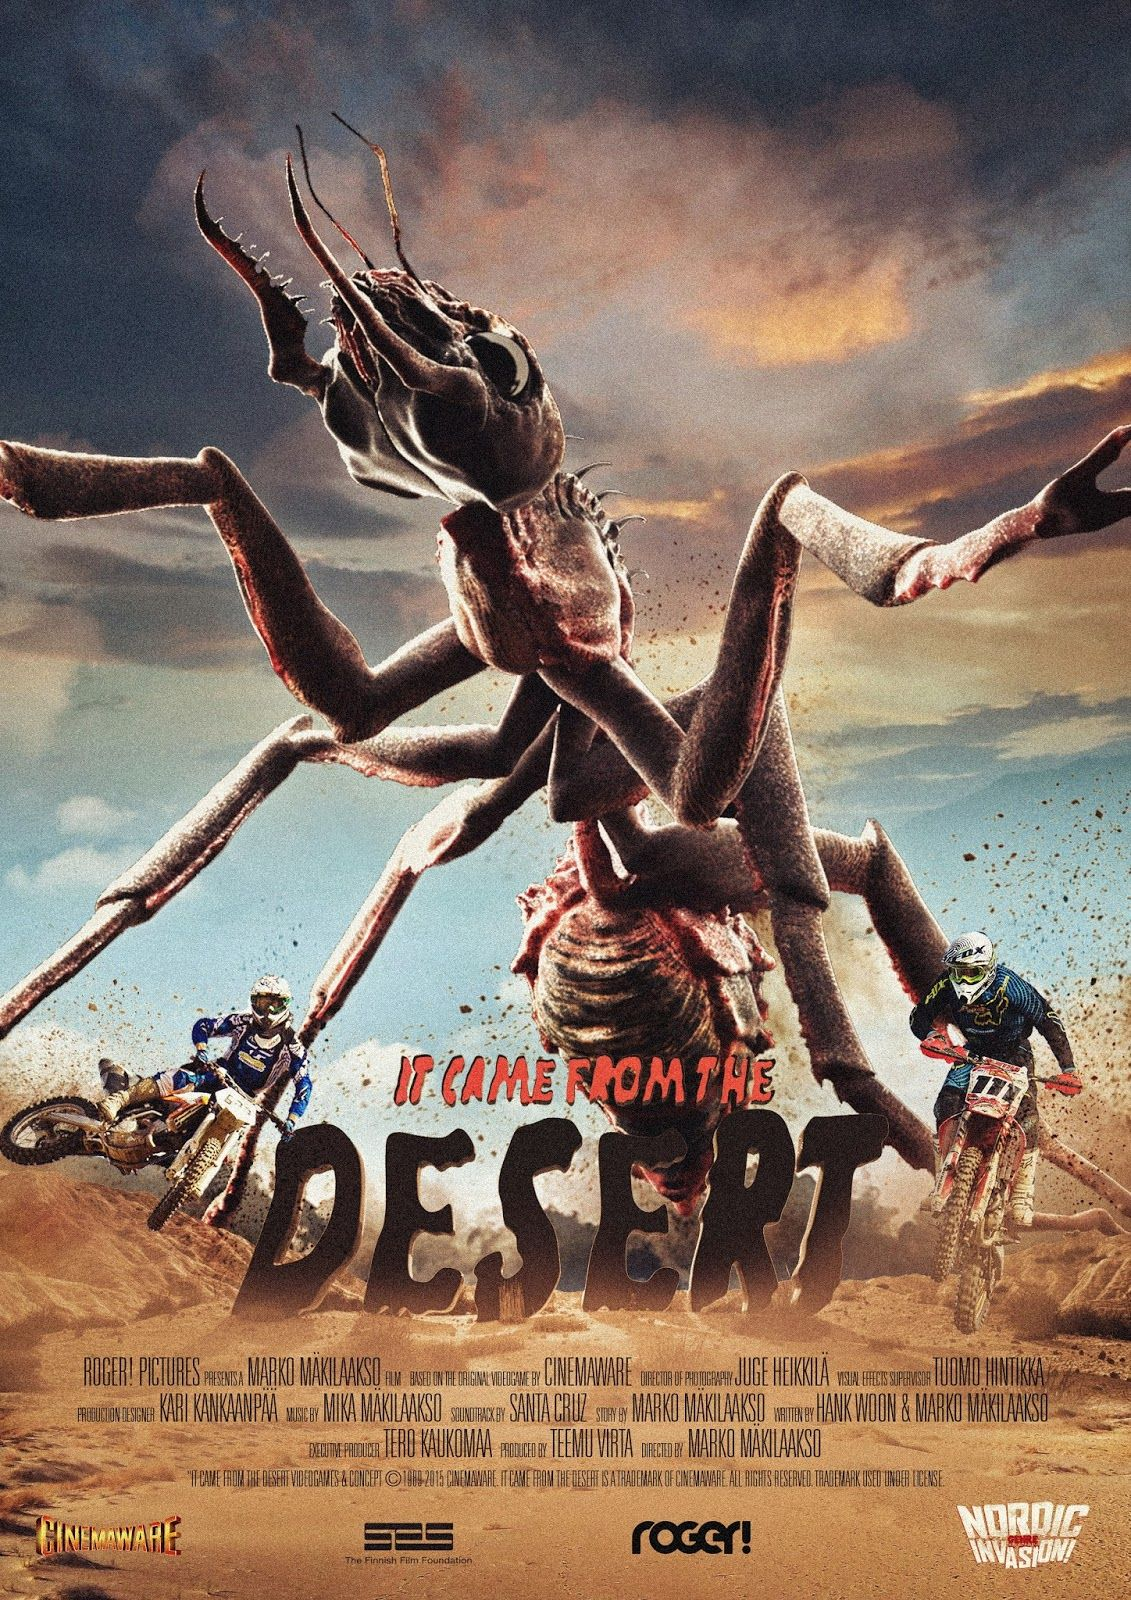 It came from the desert 2017 movie full movies online